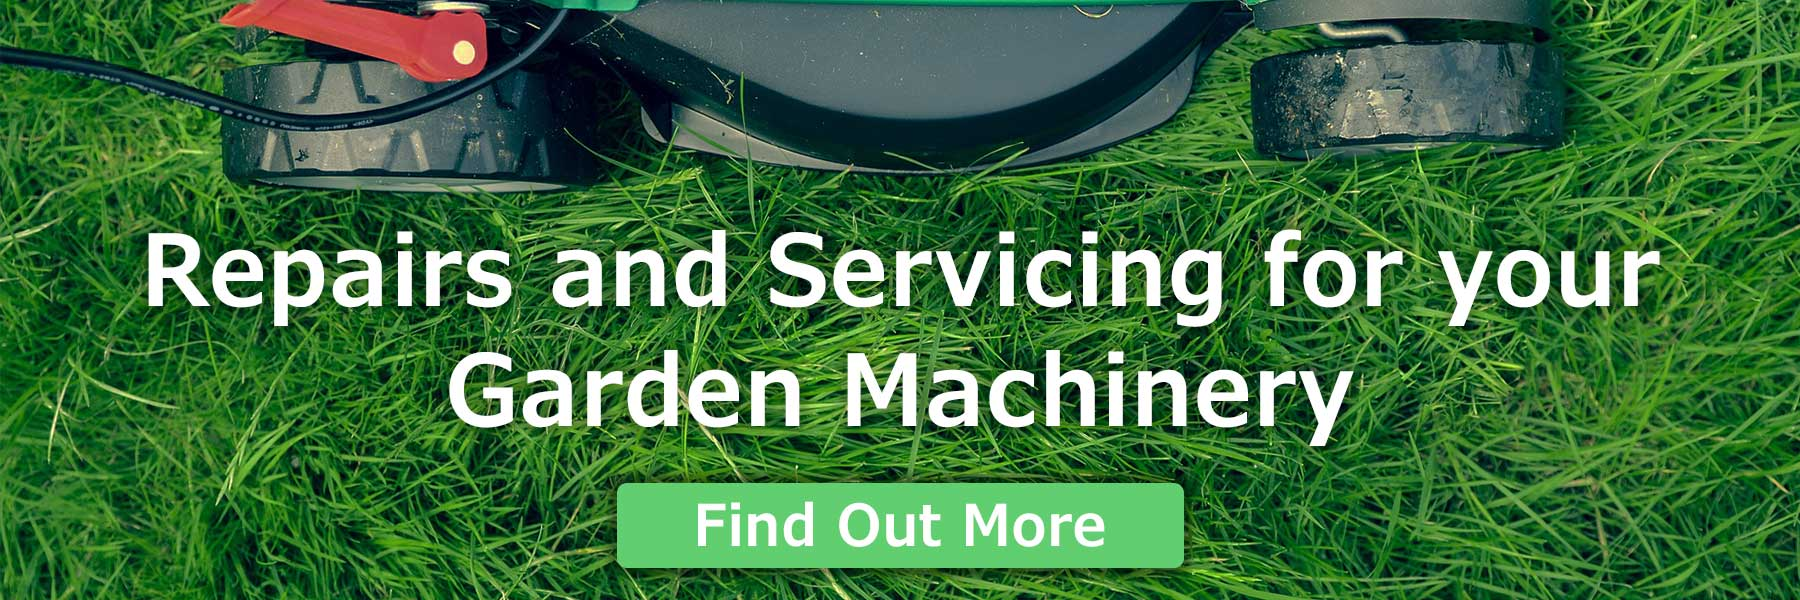 Garden machinery repairs and servicing banner